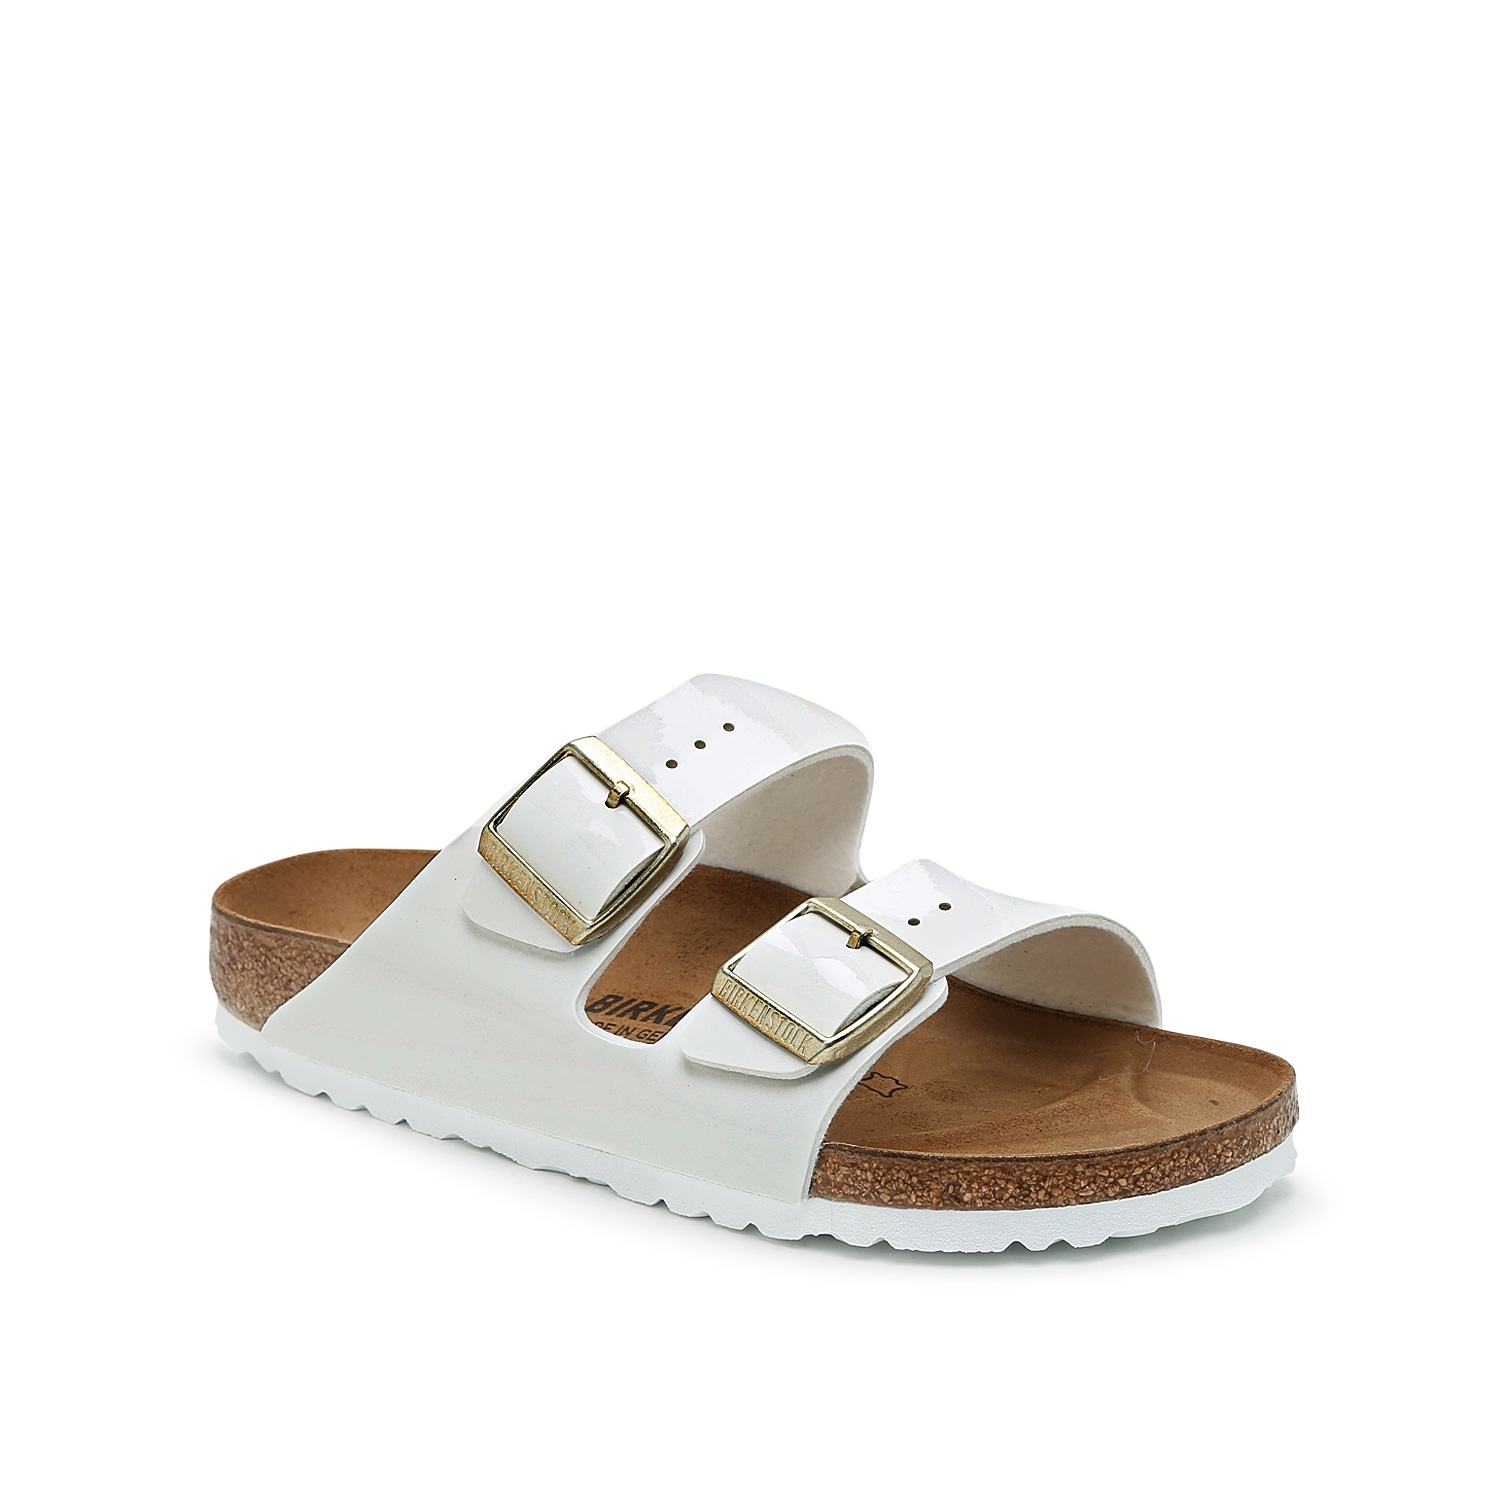 The women\\\'s Arizona sandal from Birkenstock will bring a classic spin to warm weather looks. These slides feature a contoured footbed that will make this pair your go-to for any occasion.